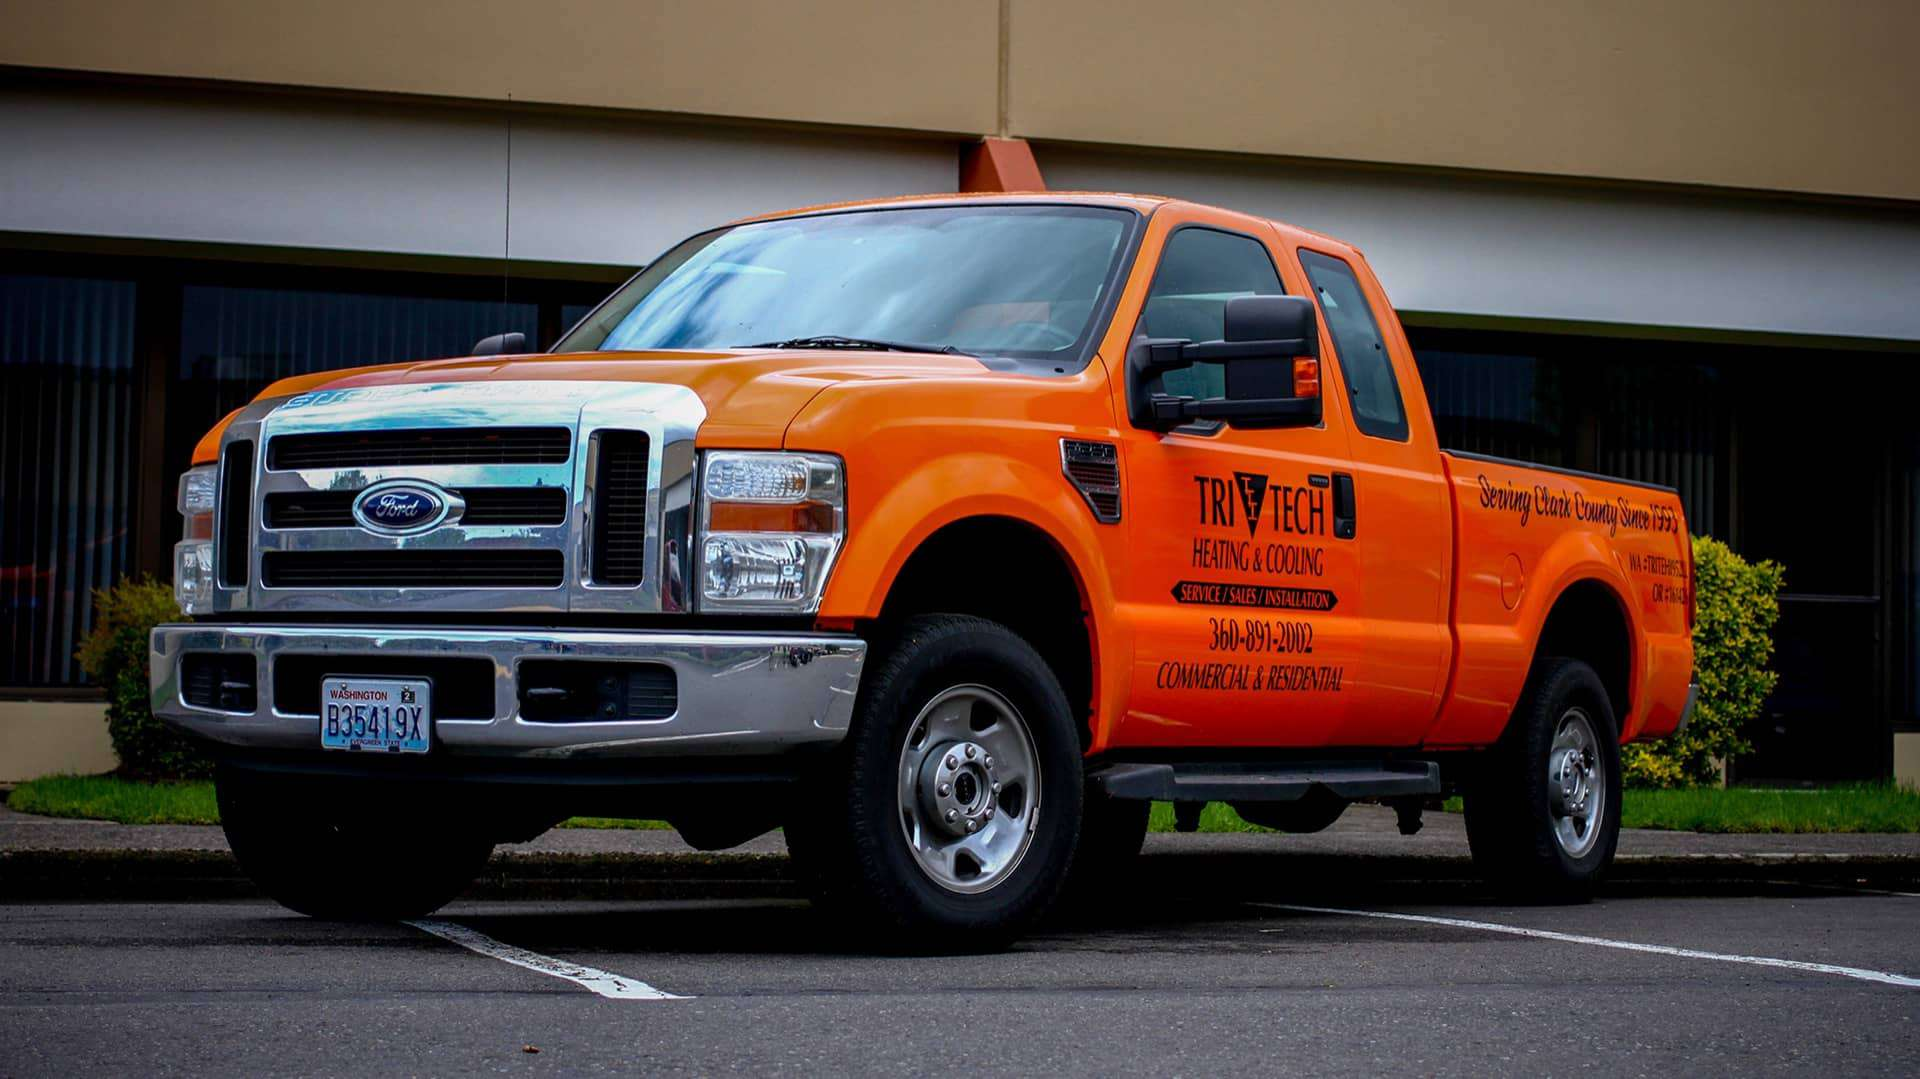 Fleet Graphics & Lettering for Tri-Tech Heating and Cooling on their Ford F250